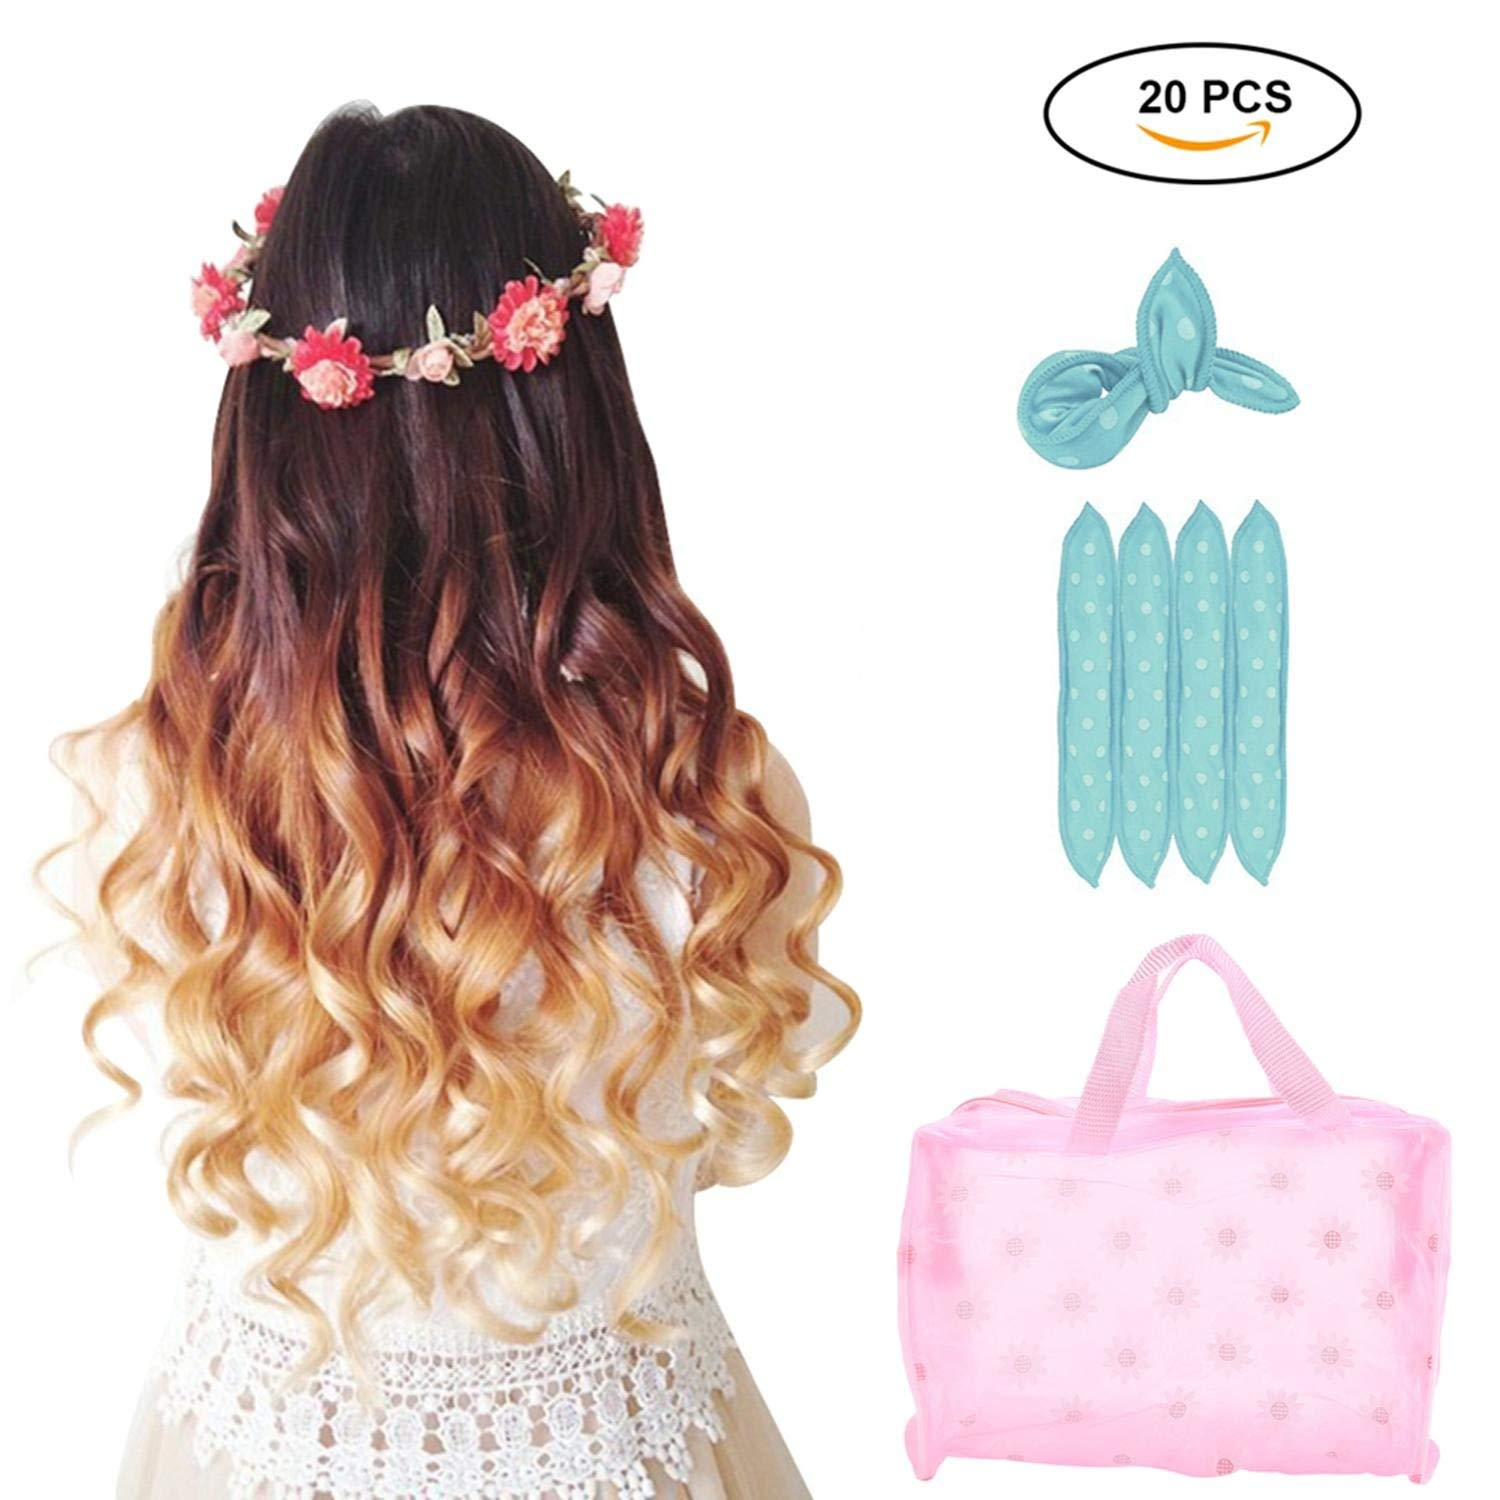 Pered For Pennies Overnight Dollar Curls Get Huge Naturally Curly Looking Hair With Almost No Heat All Sponge Curlers From The